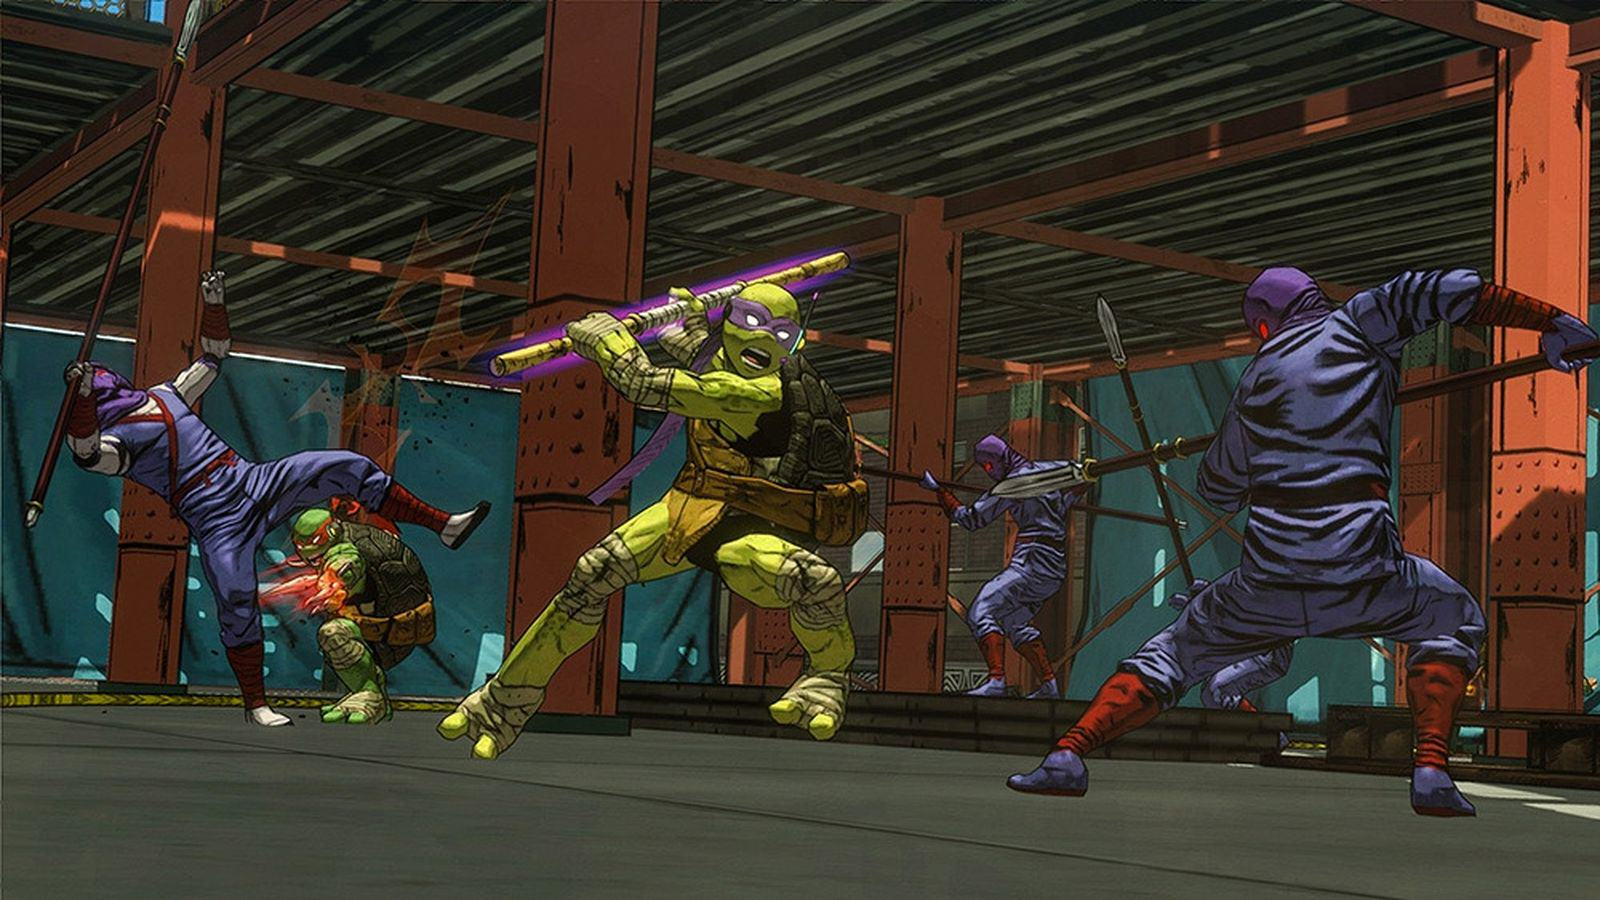 tmnt mim.0.0 Upcoming Teenage Mutant Ninja Turtles Game Now Has An Awesome Trailer